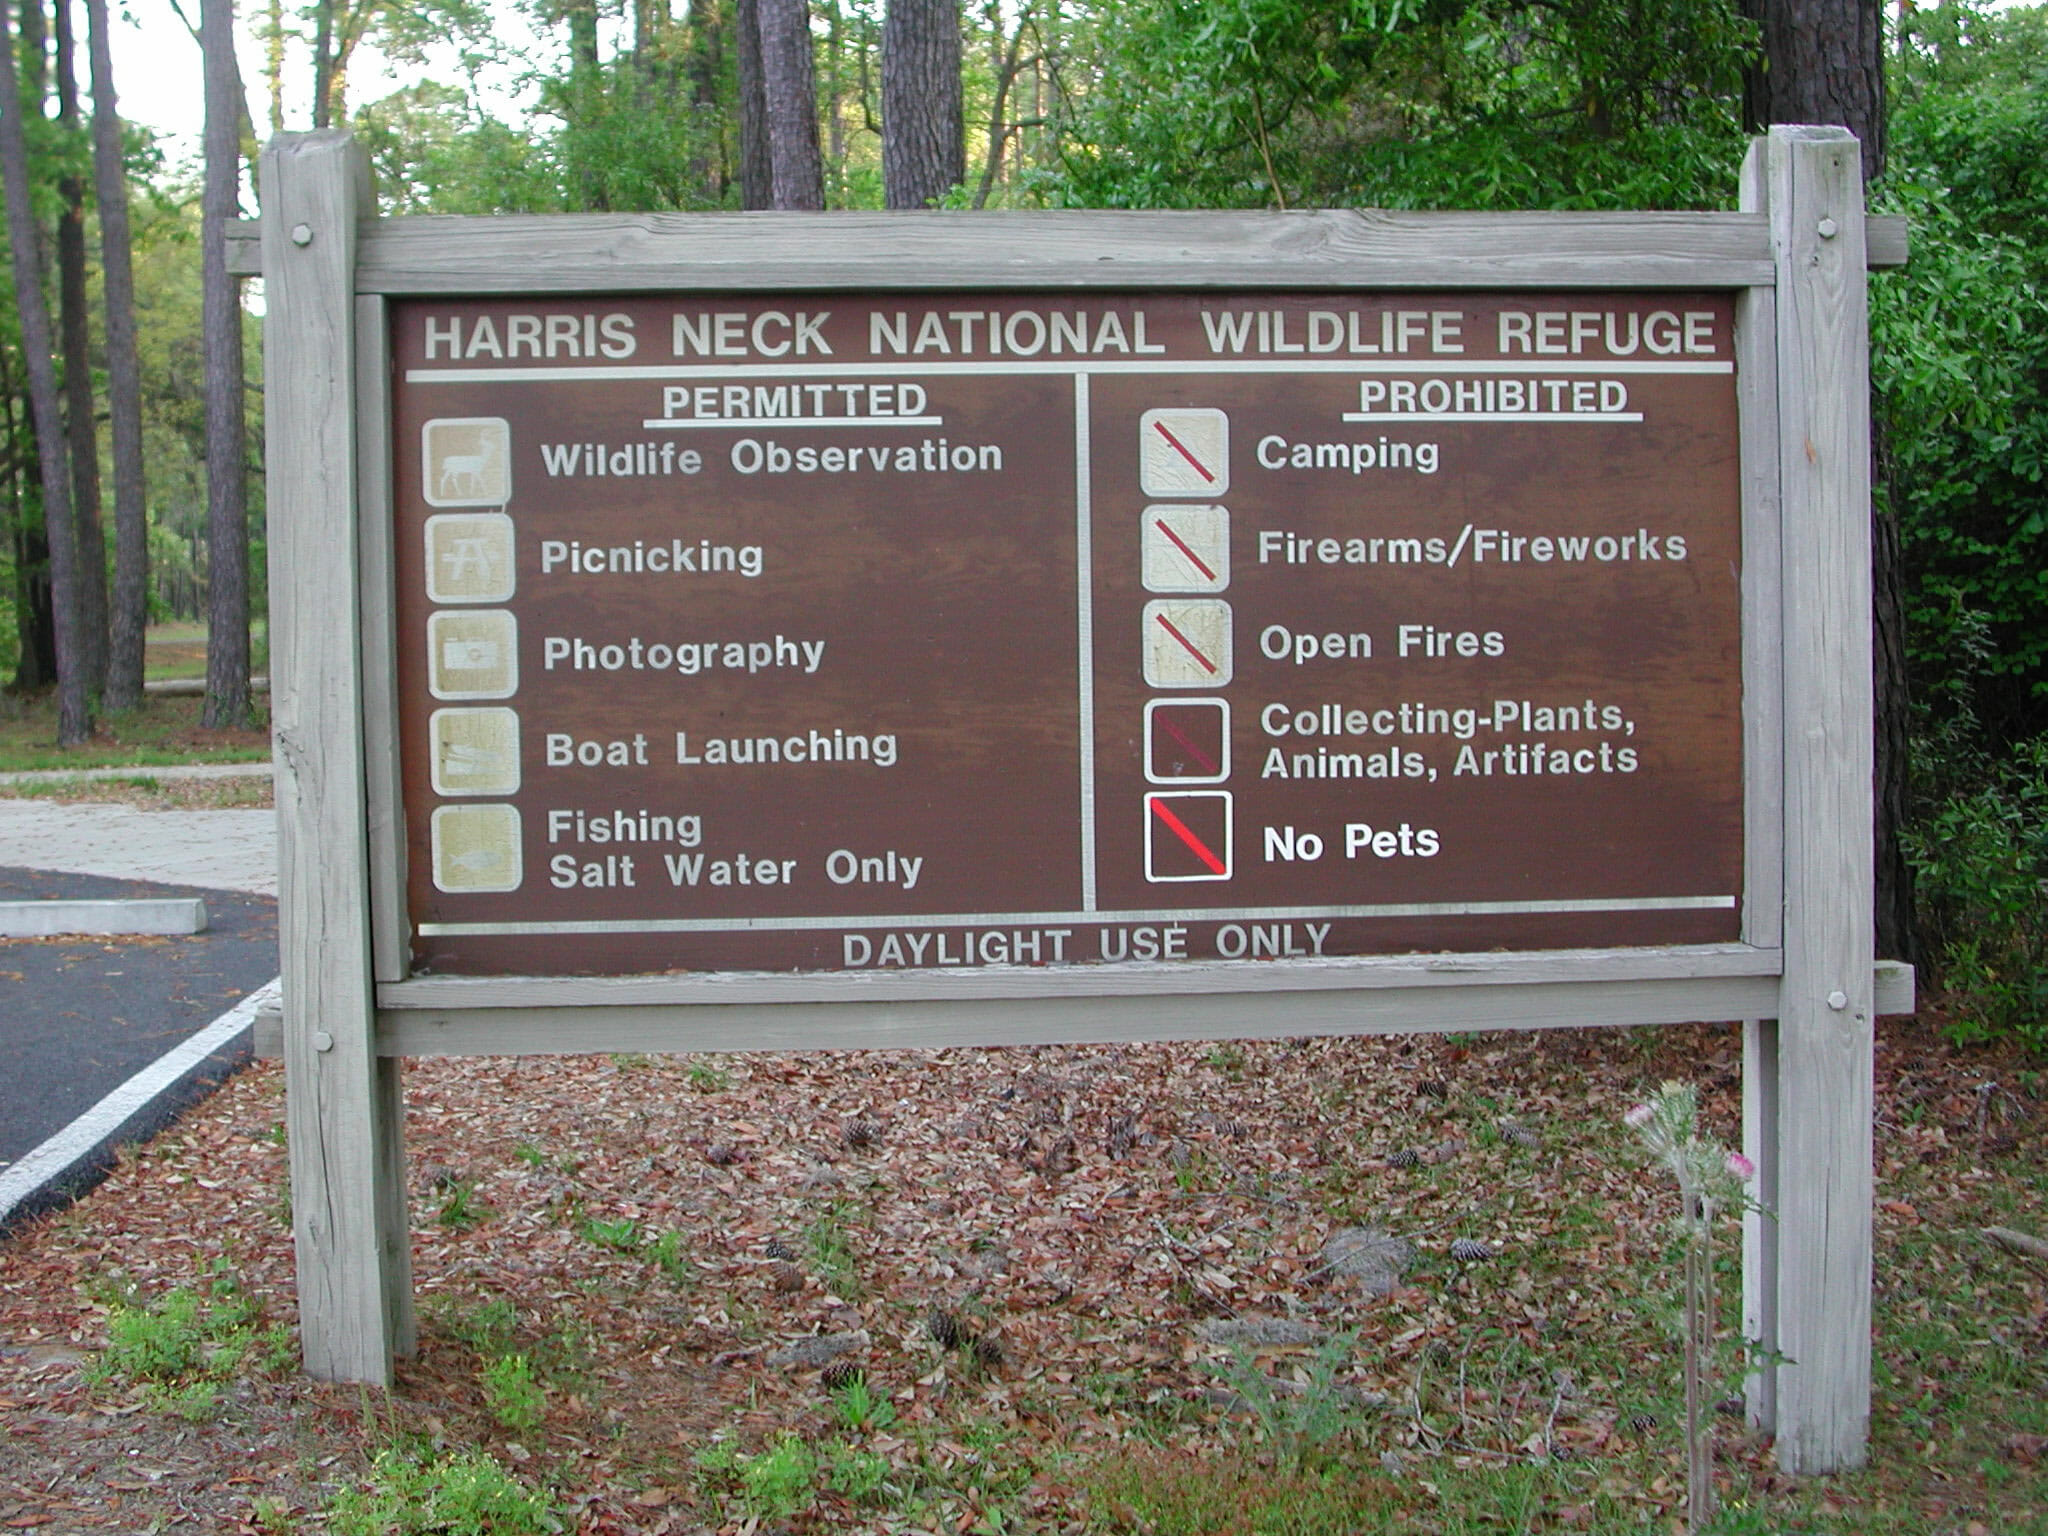 harris neck national wildlife refuge